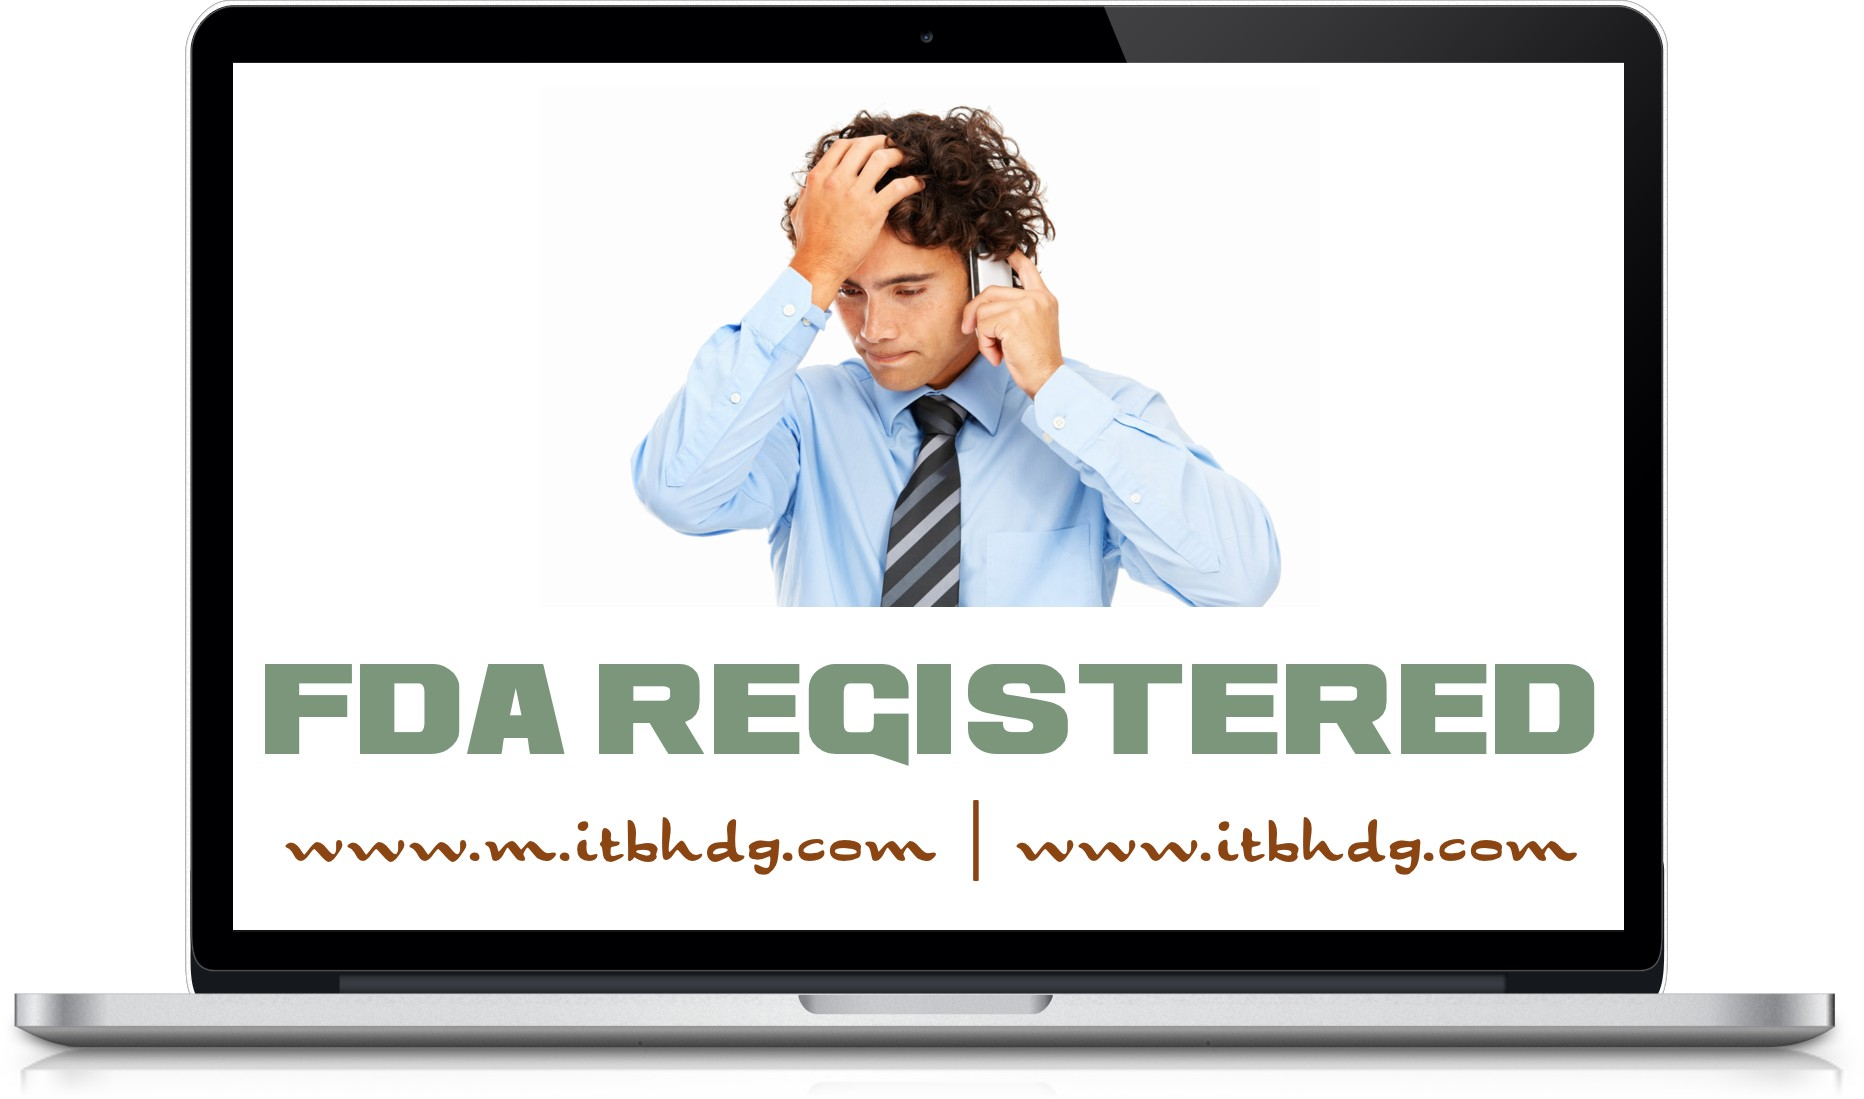 LIMITED OFFER : Low Cost FDA Registration @ ITB HOLDINGS LLC | www.itbhdg.com | www.m.itbhdg.com